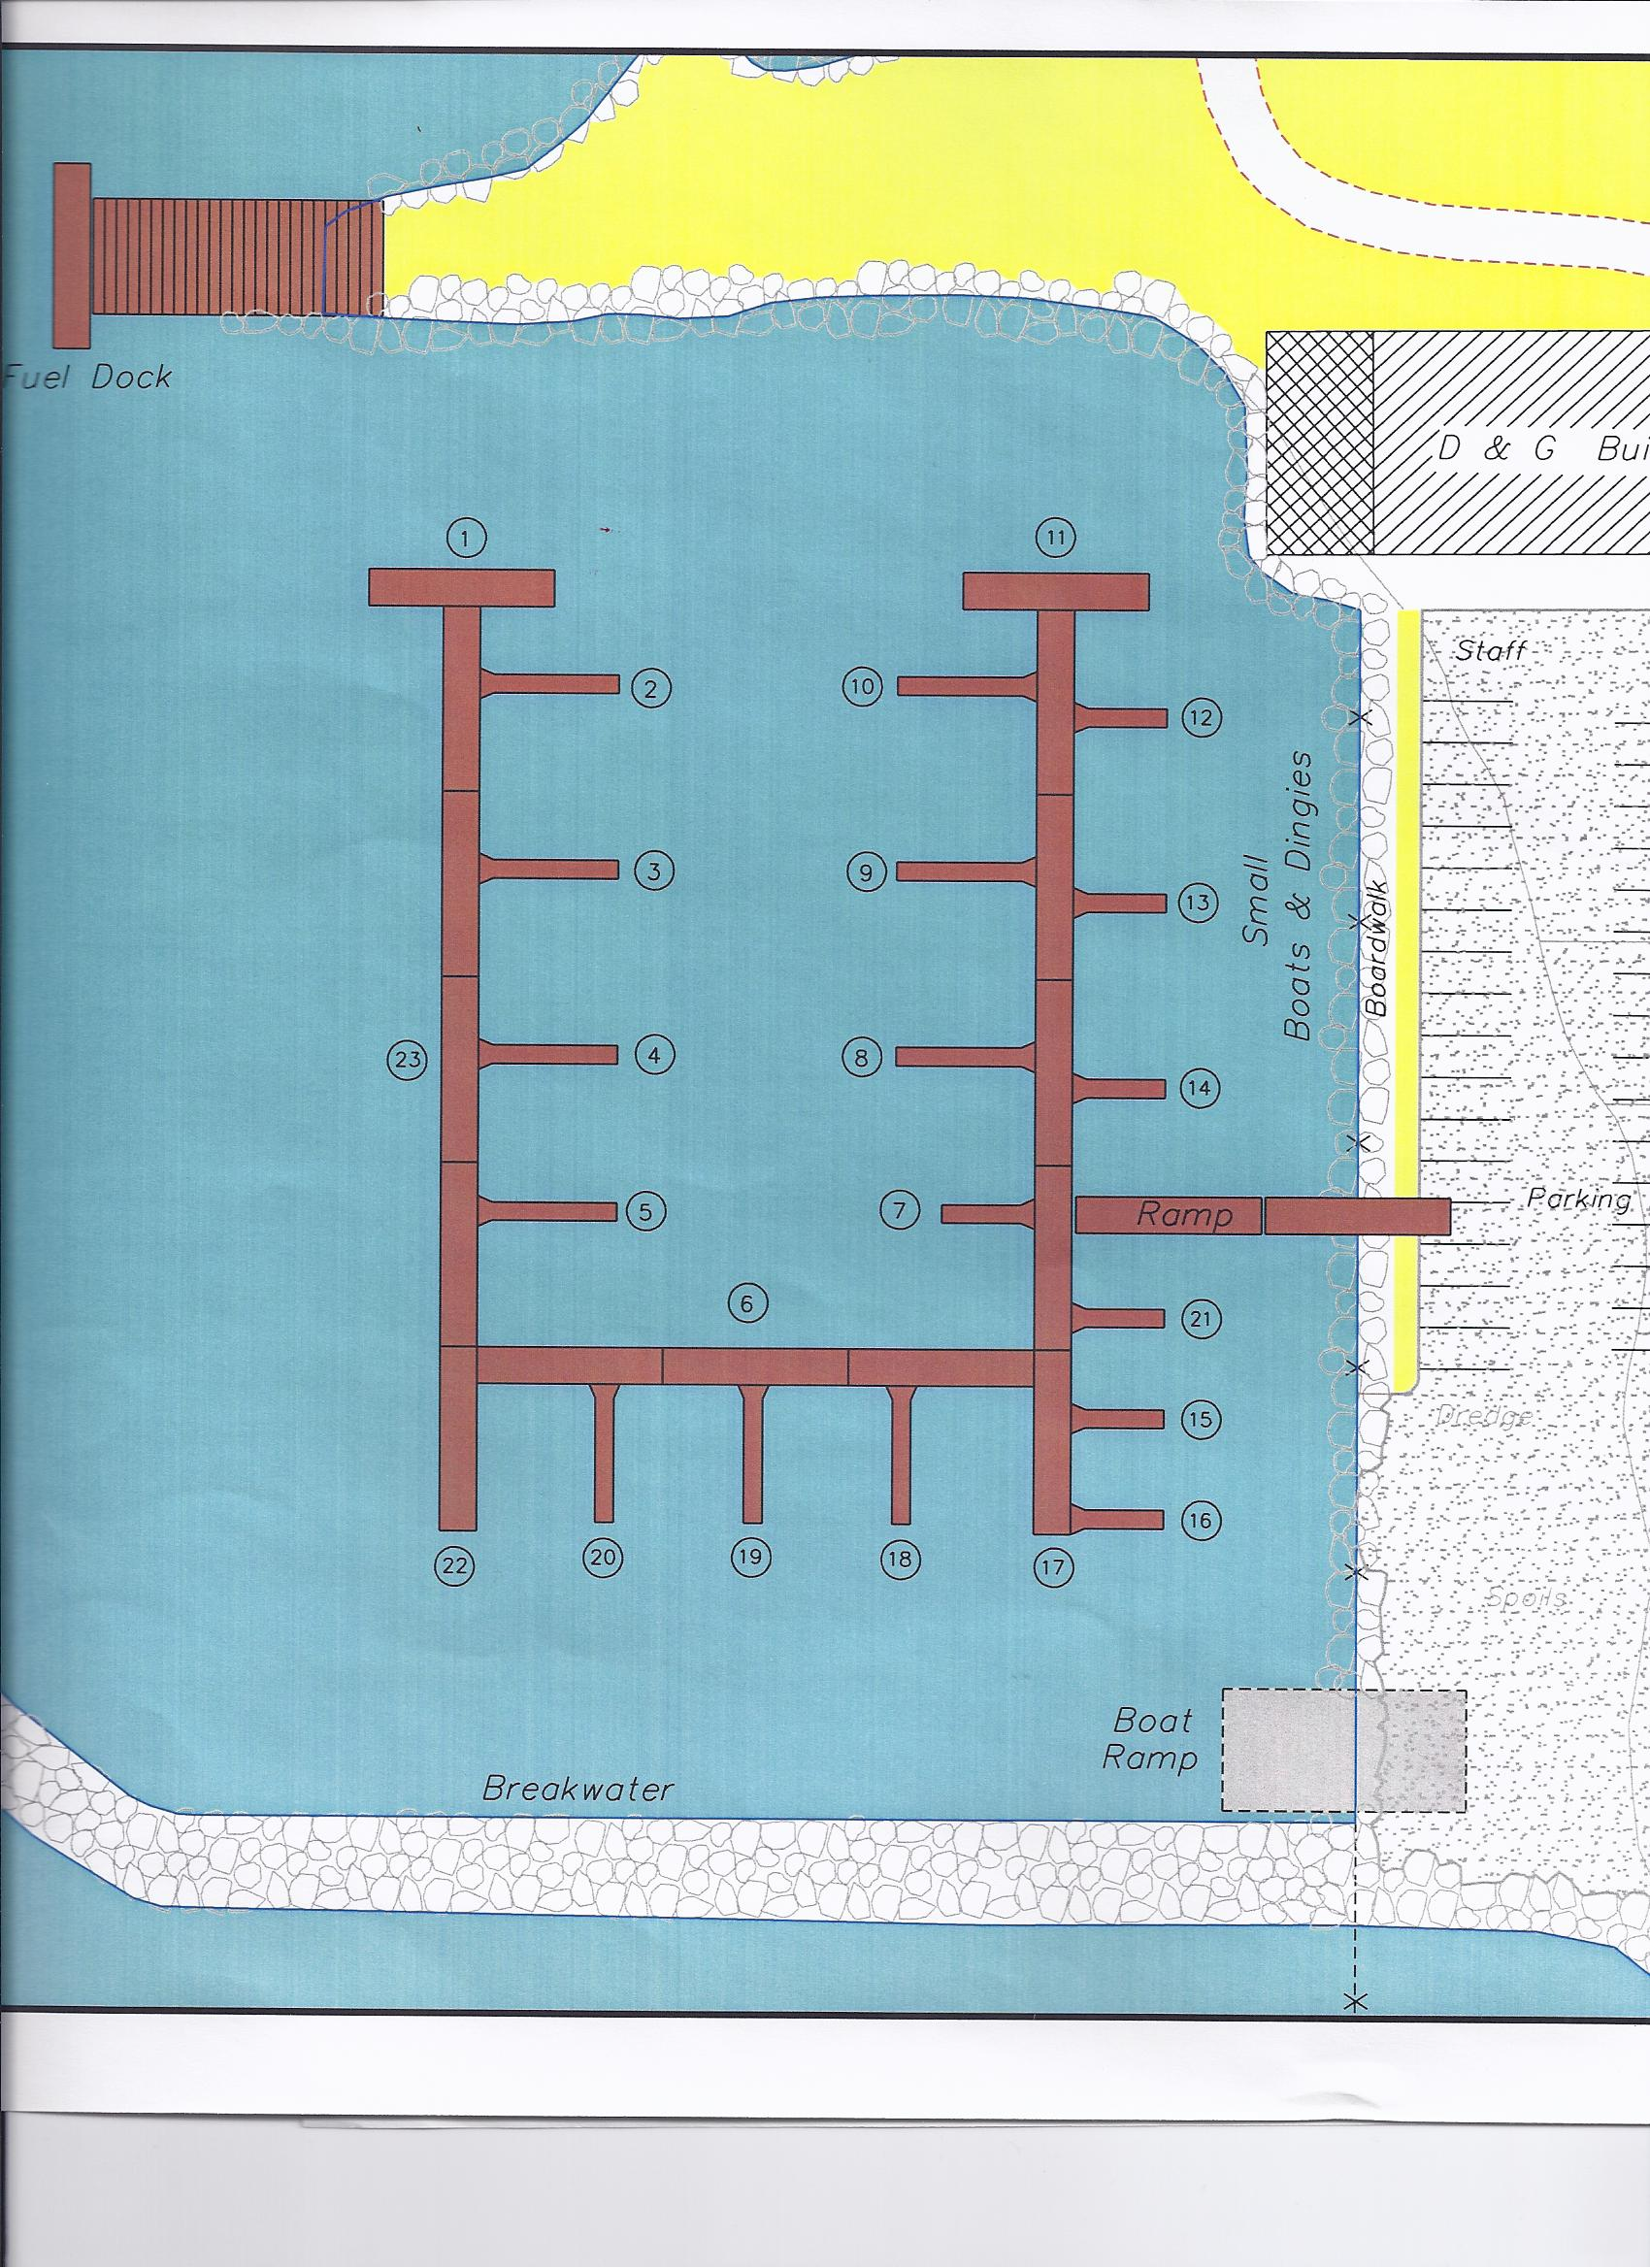 Dock Layout Picture